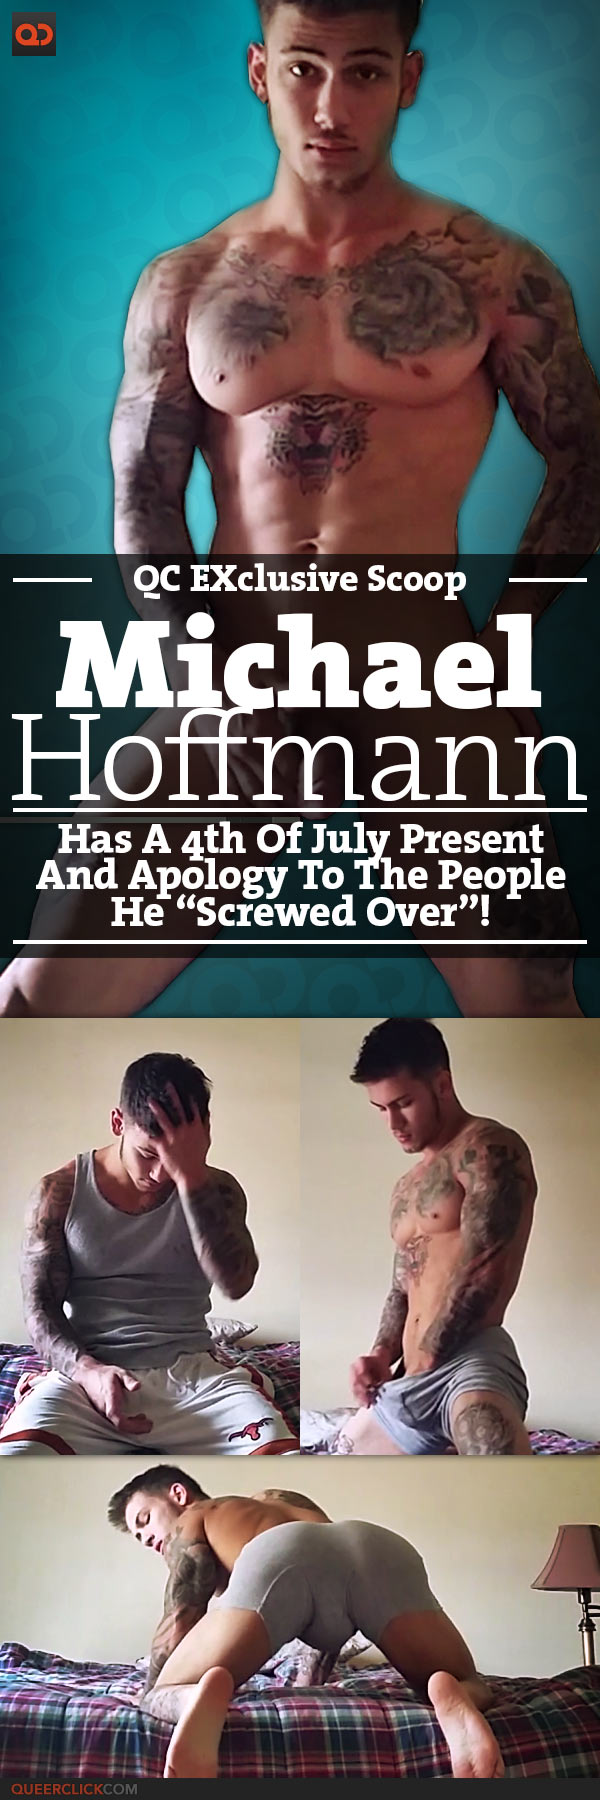 """QC Exclusive Scoop: Michael Hoffman Has A 4th Of July Present And Apology To The People He """"Screwed Over"""""""